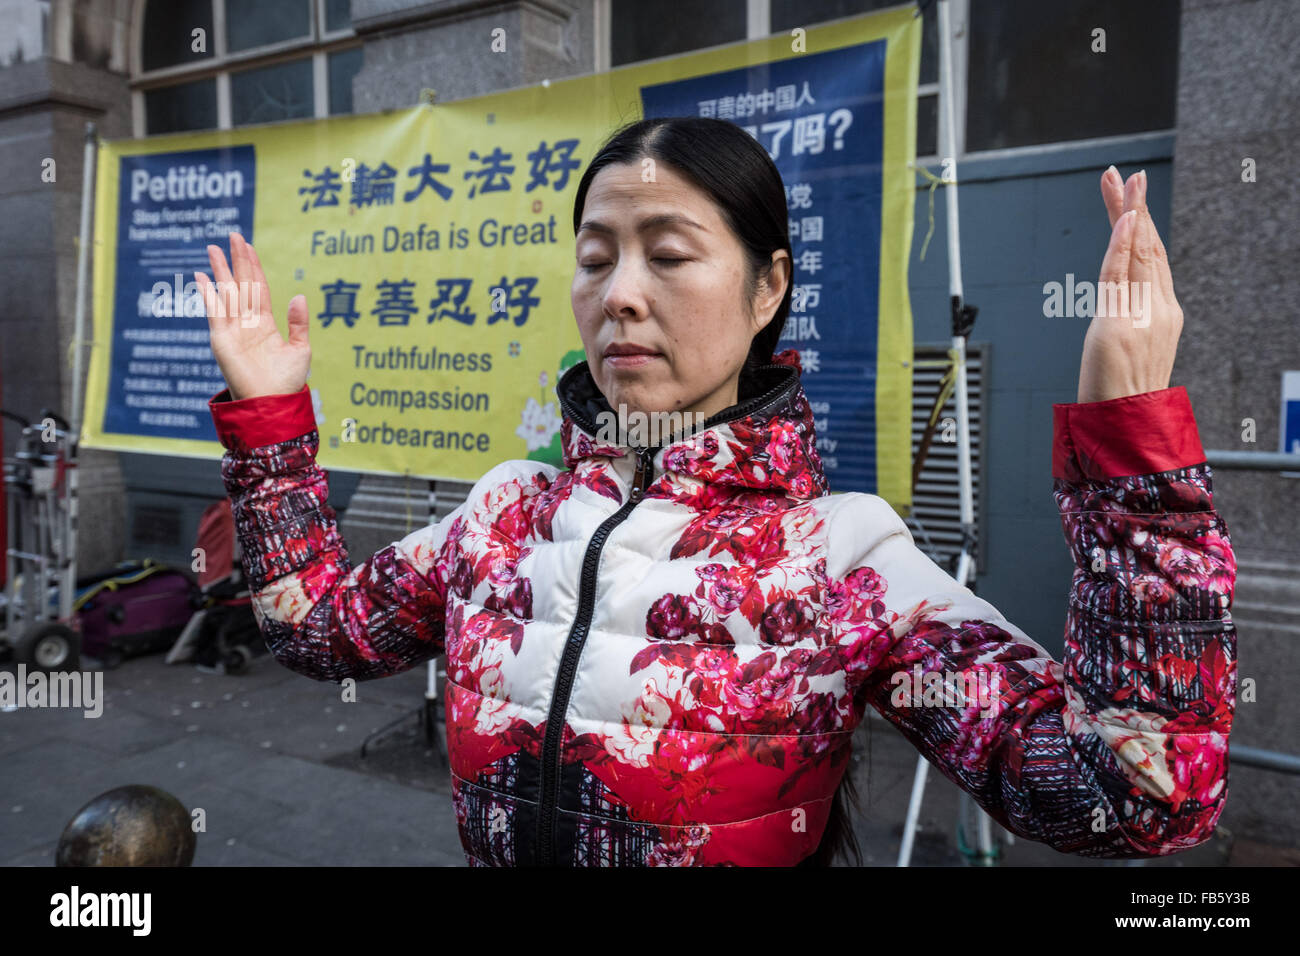 London, UK. 10th January, 2016. Practitioners of Falun Gong (or Falun Dafa) in Chinatown stand in protest against Stock Photo